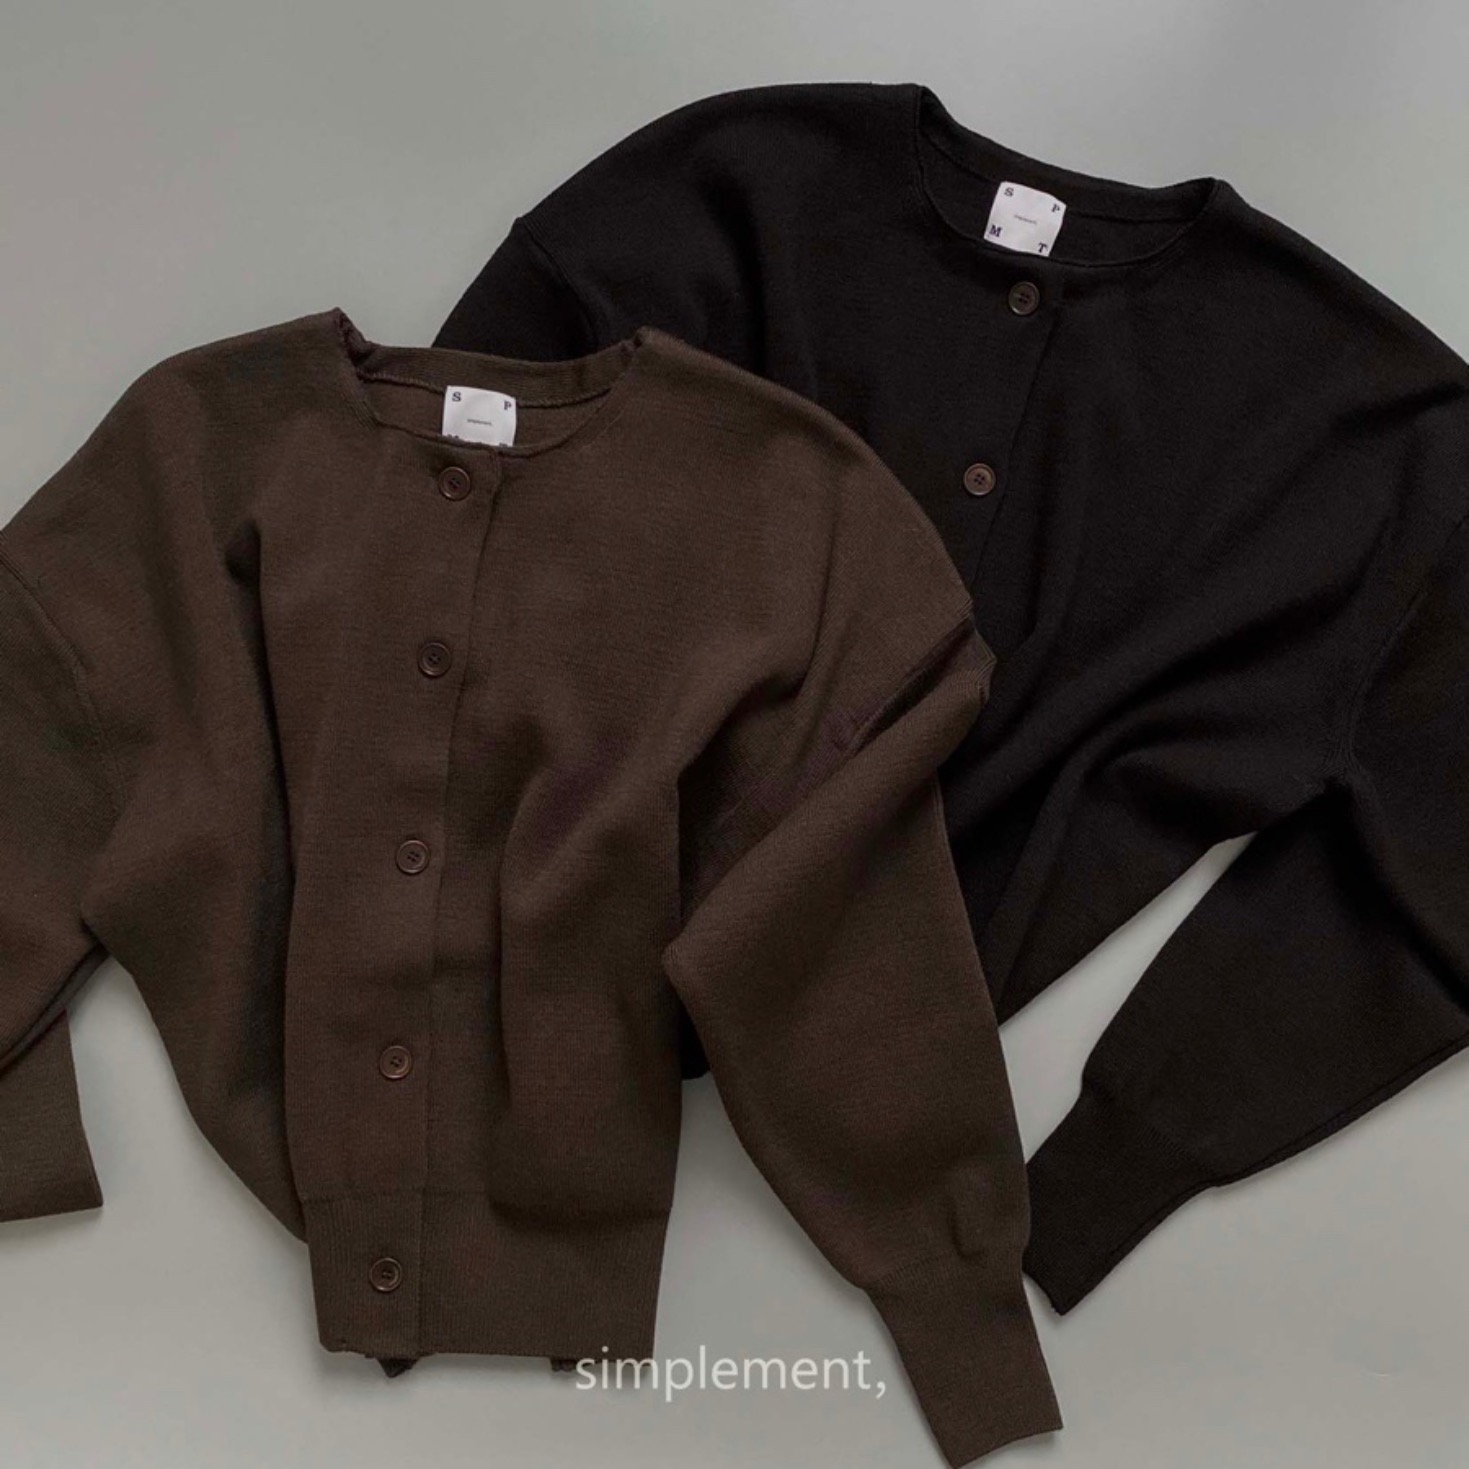 168 Le Rond Cardigan in Chocolate